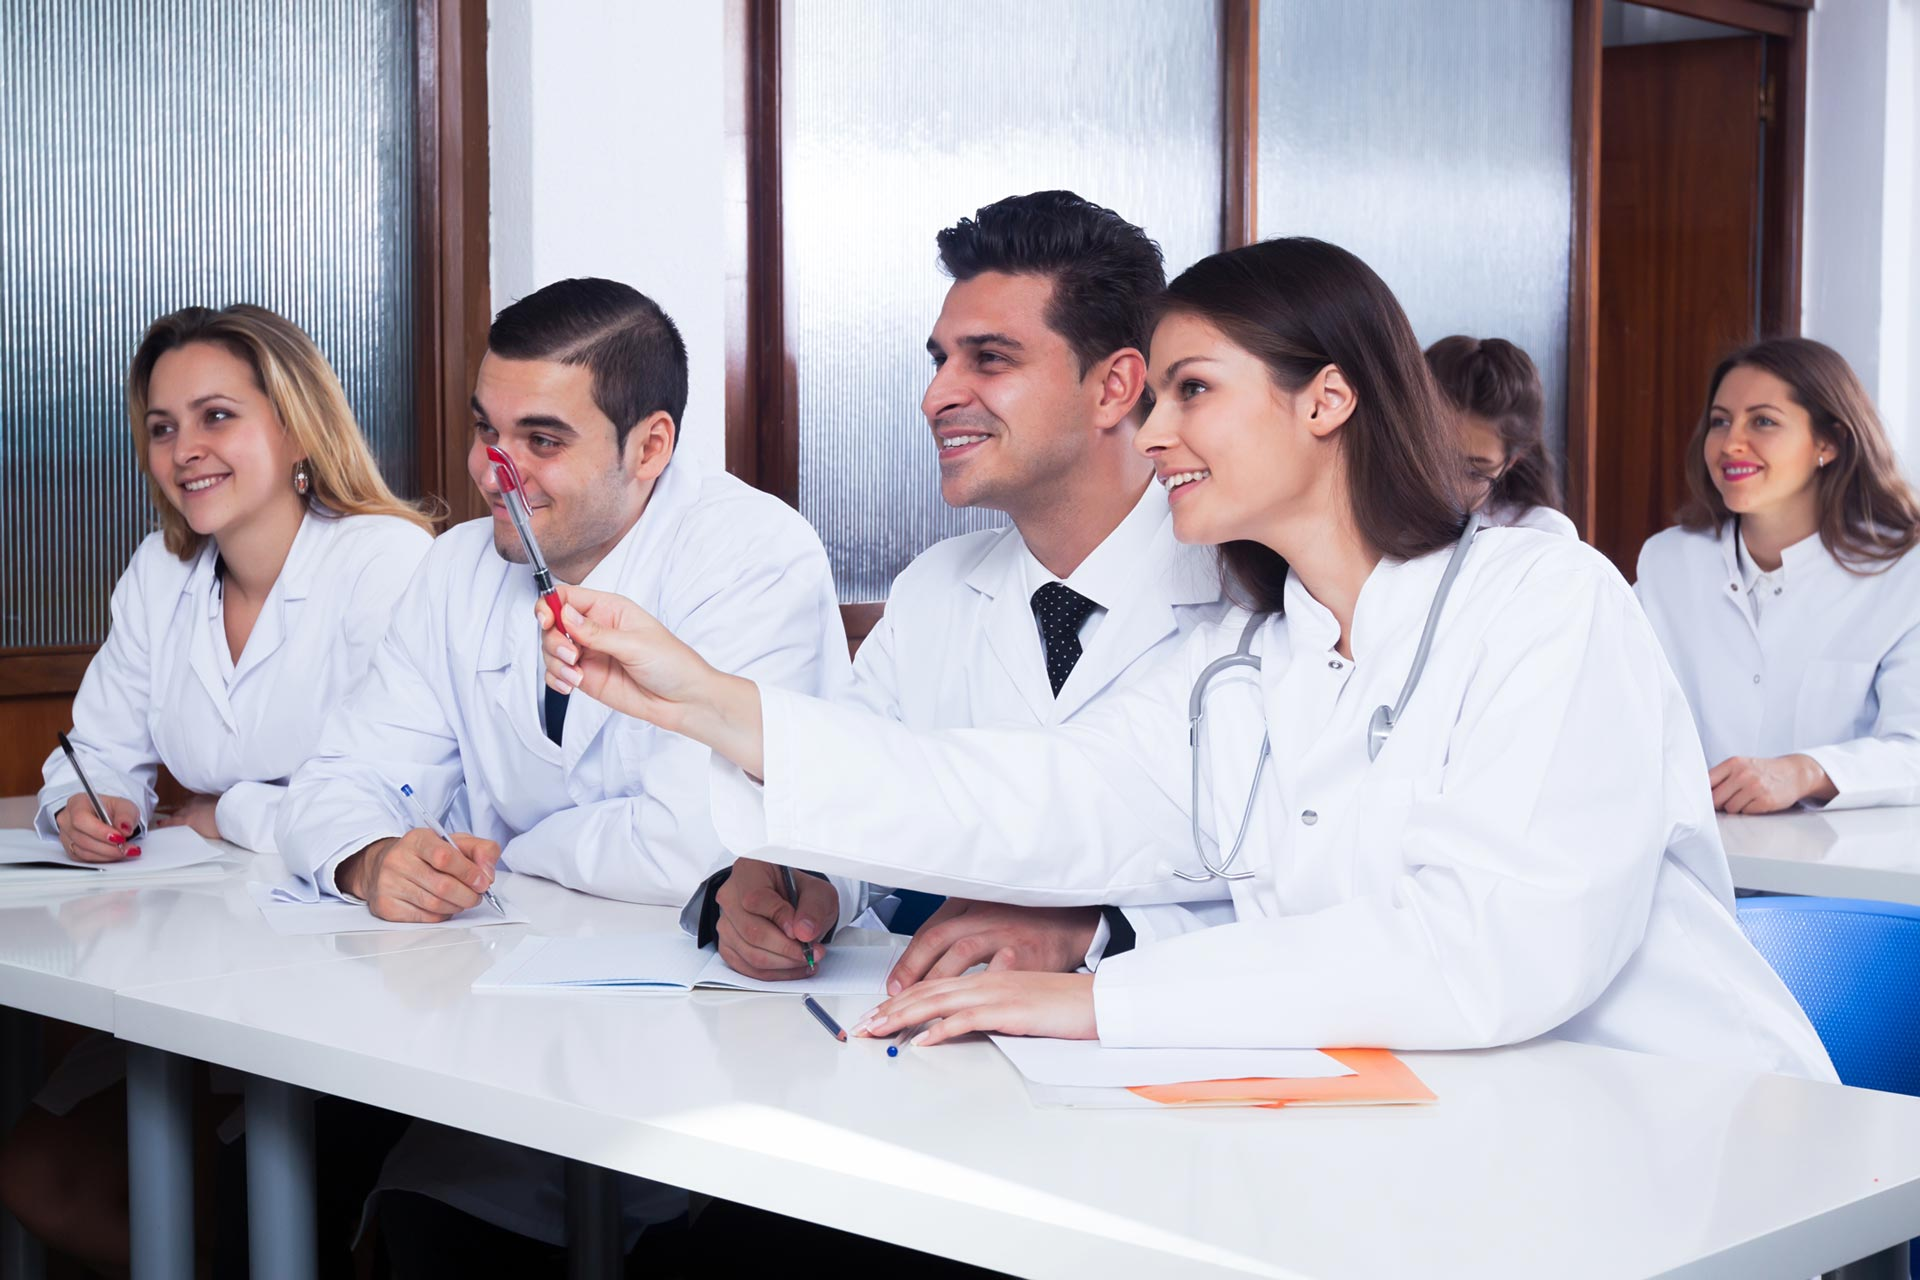 Tips for Applying to a Residency Program as an International Medical Student